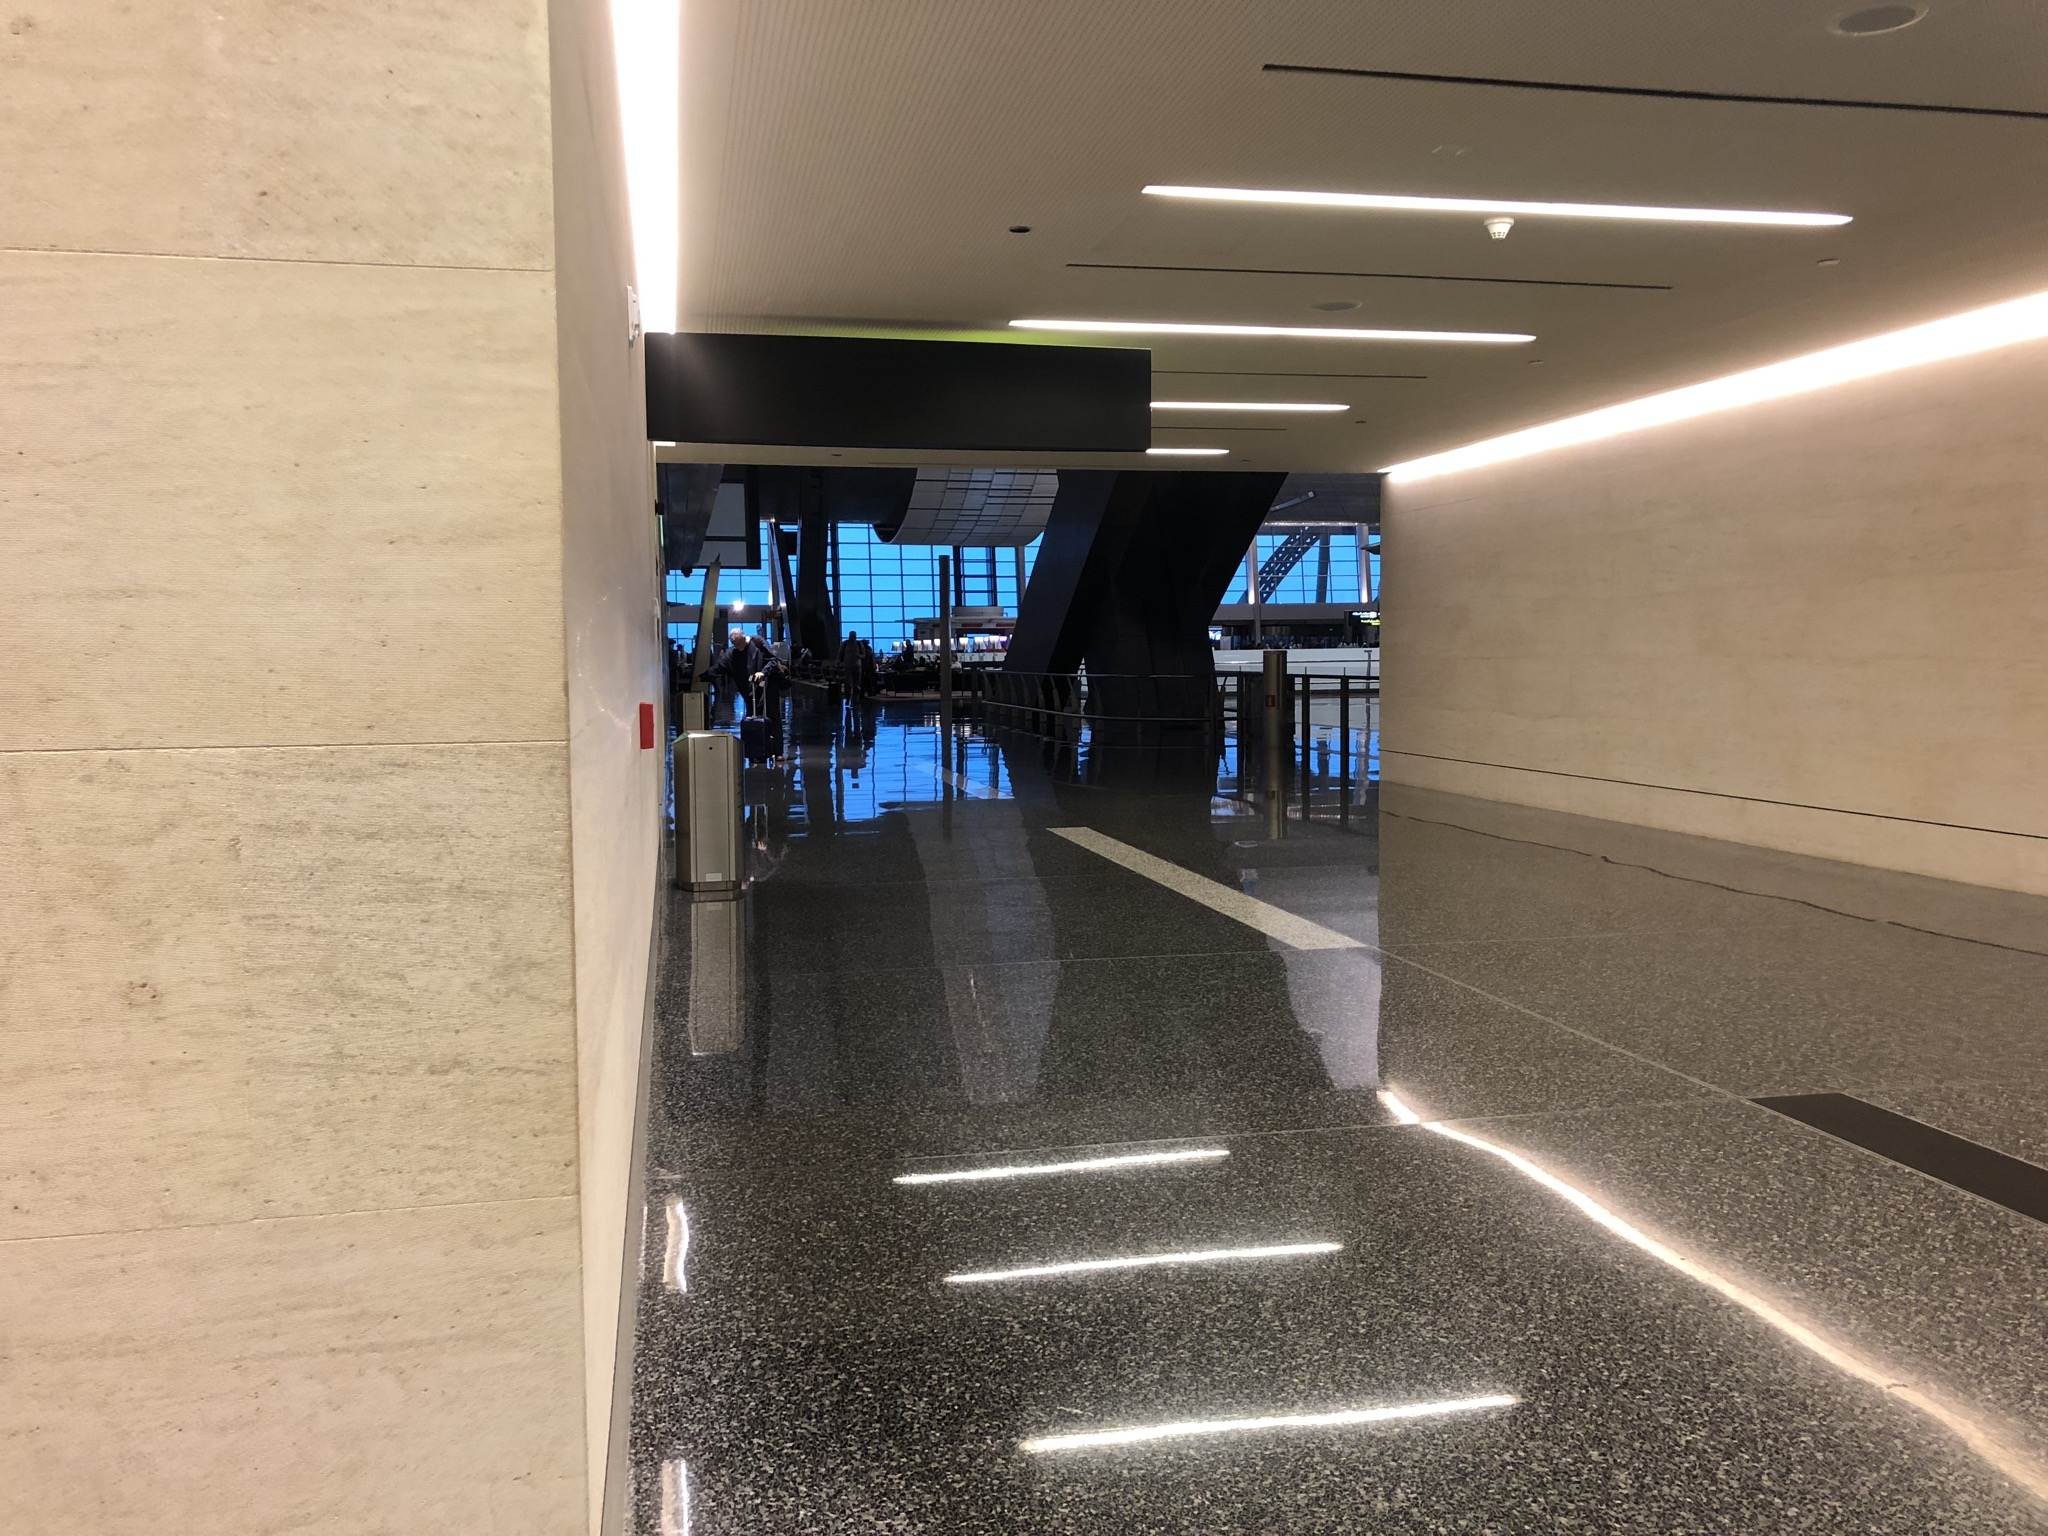 Looking back to Business Class check-in area